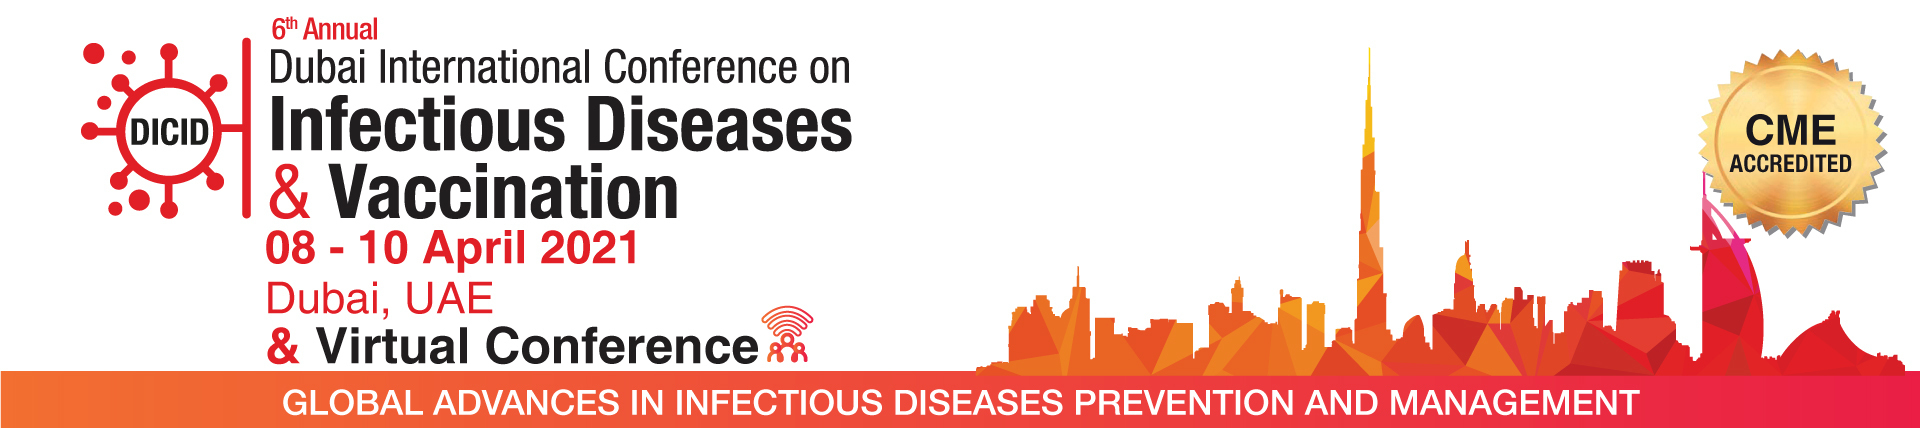 DICID is one of the main infectious diseases and vaccination platforms bringing regional and international experts to discuss latest recommendations and guidelines in the field of infectious diseases.